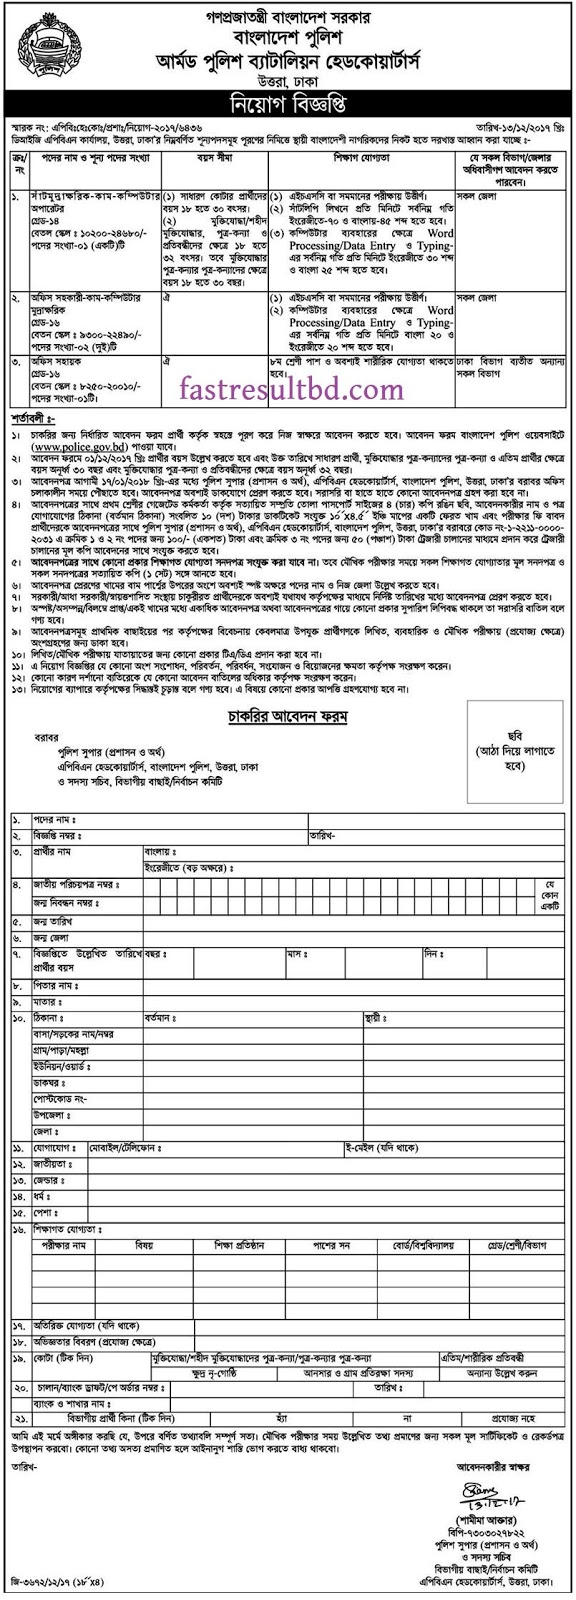 Bangladesh Police Job Circular 2017 December